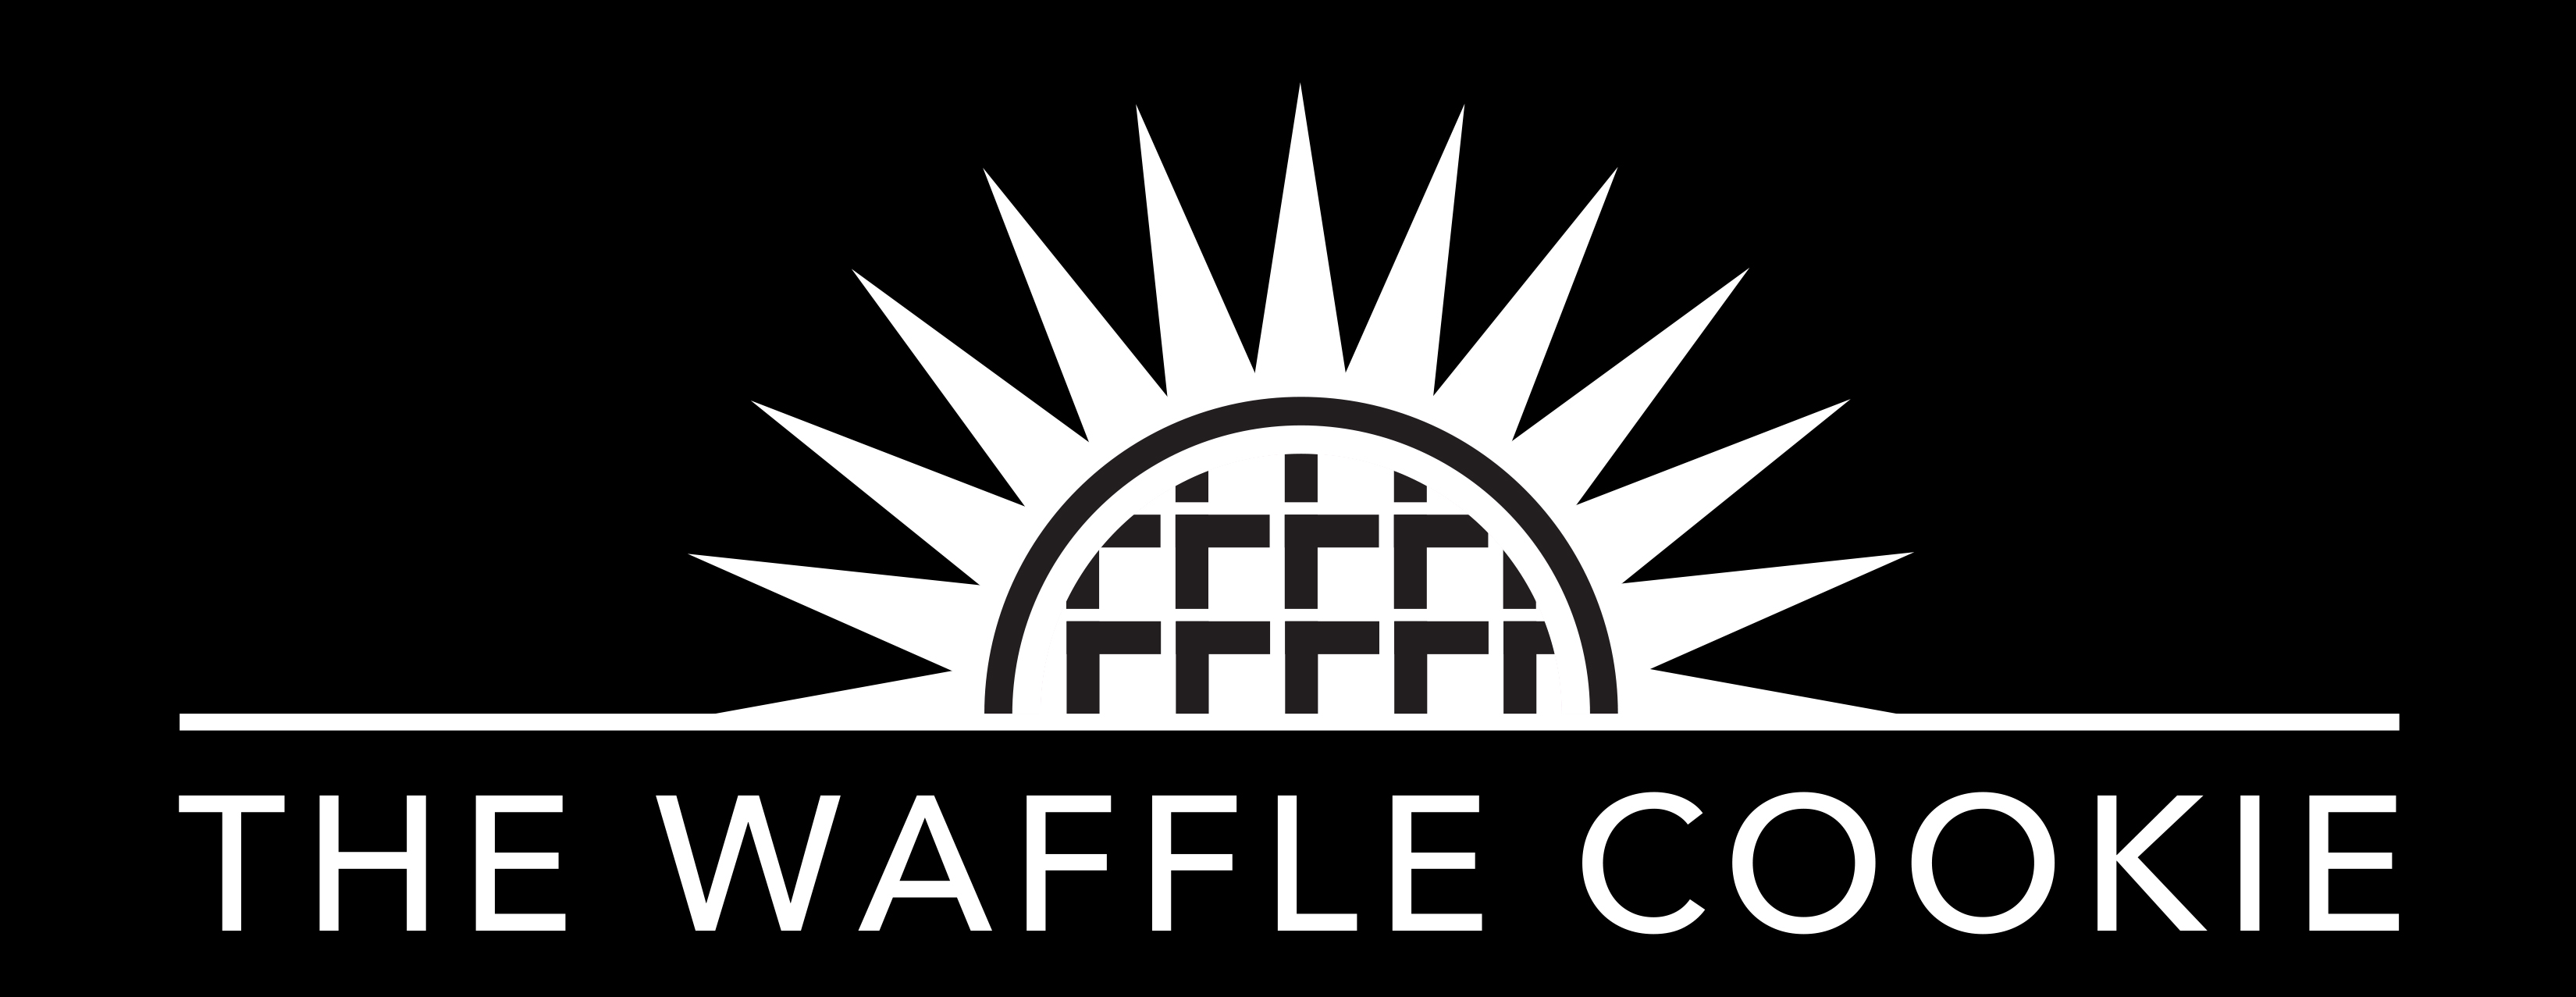 The Waffle Cookie